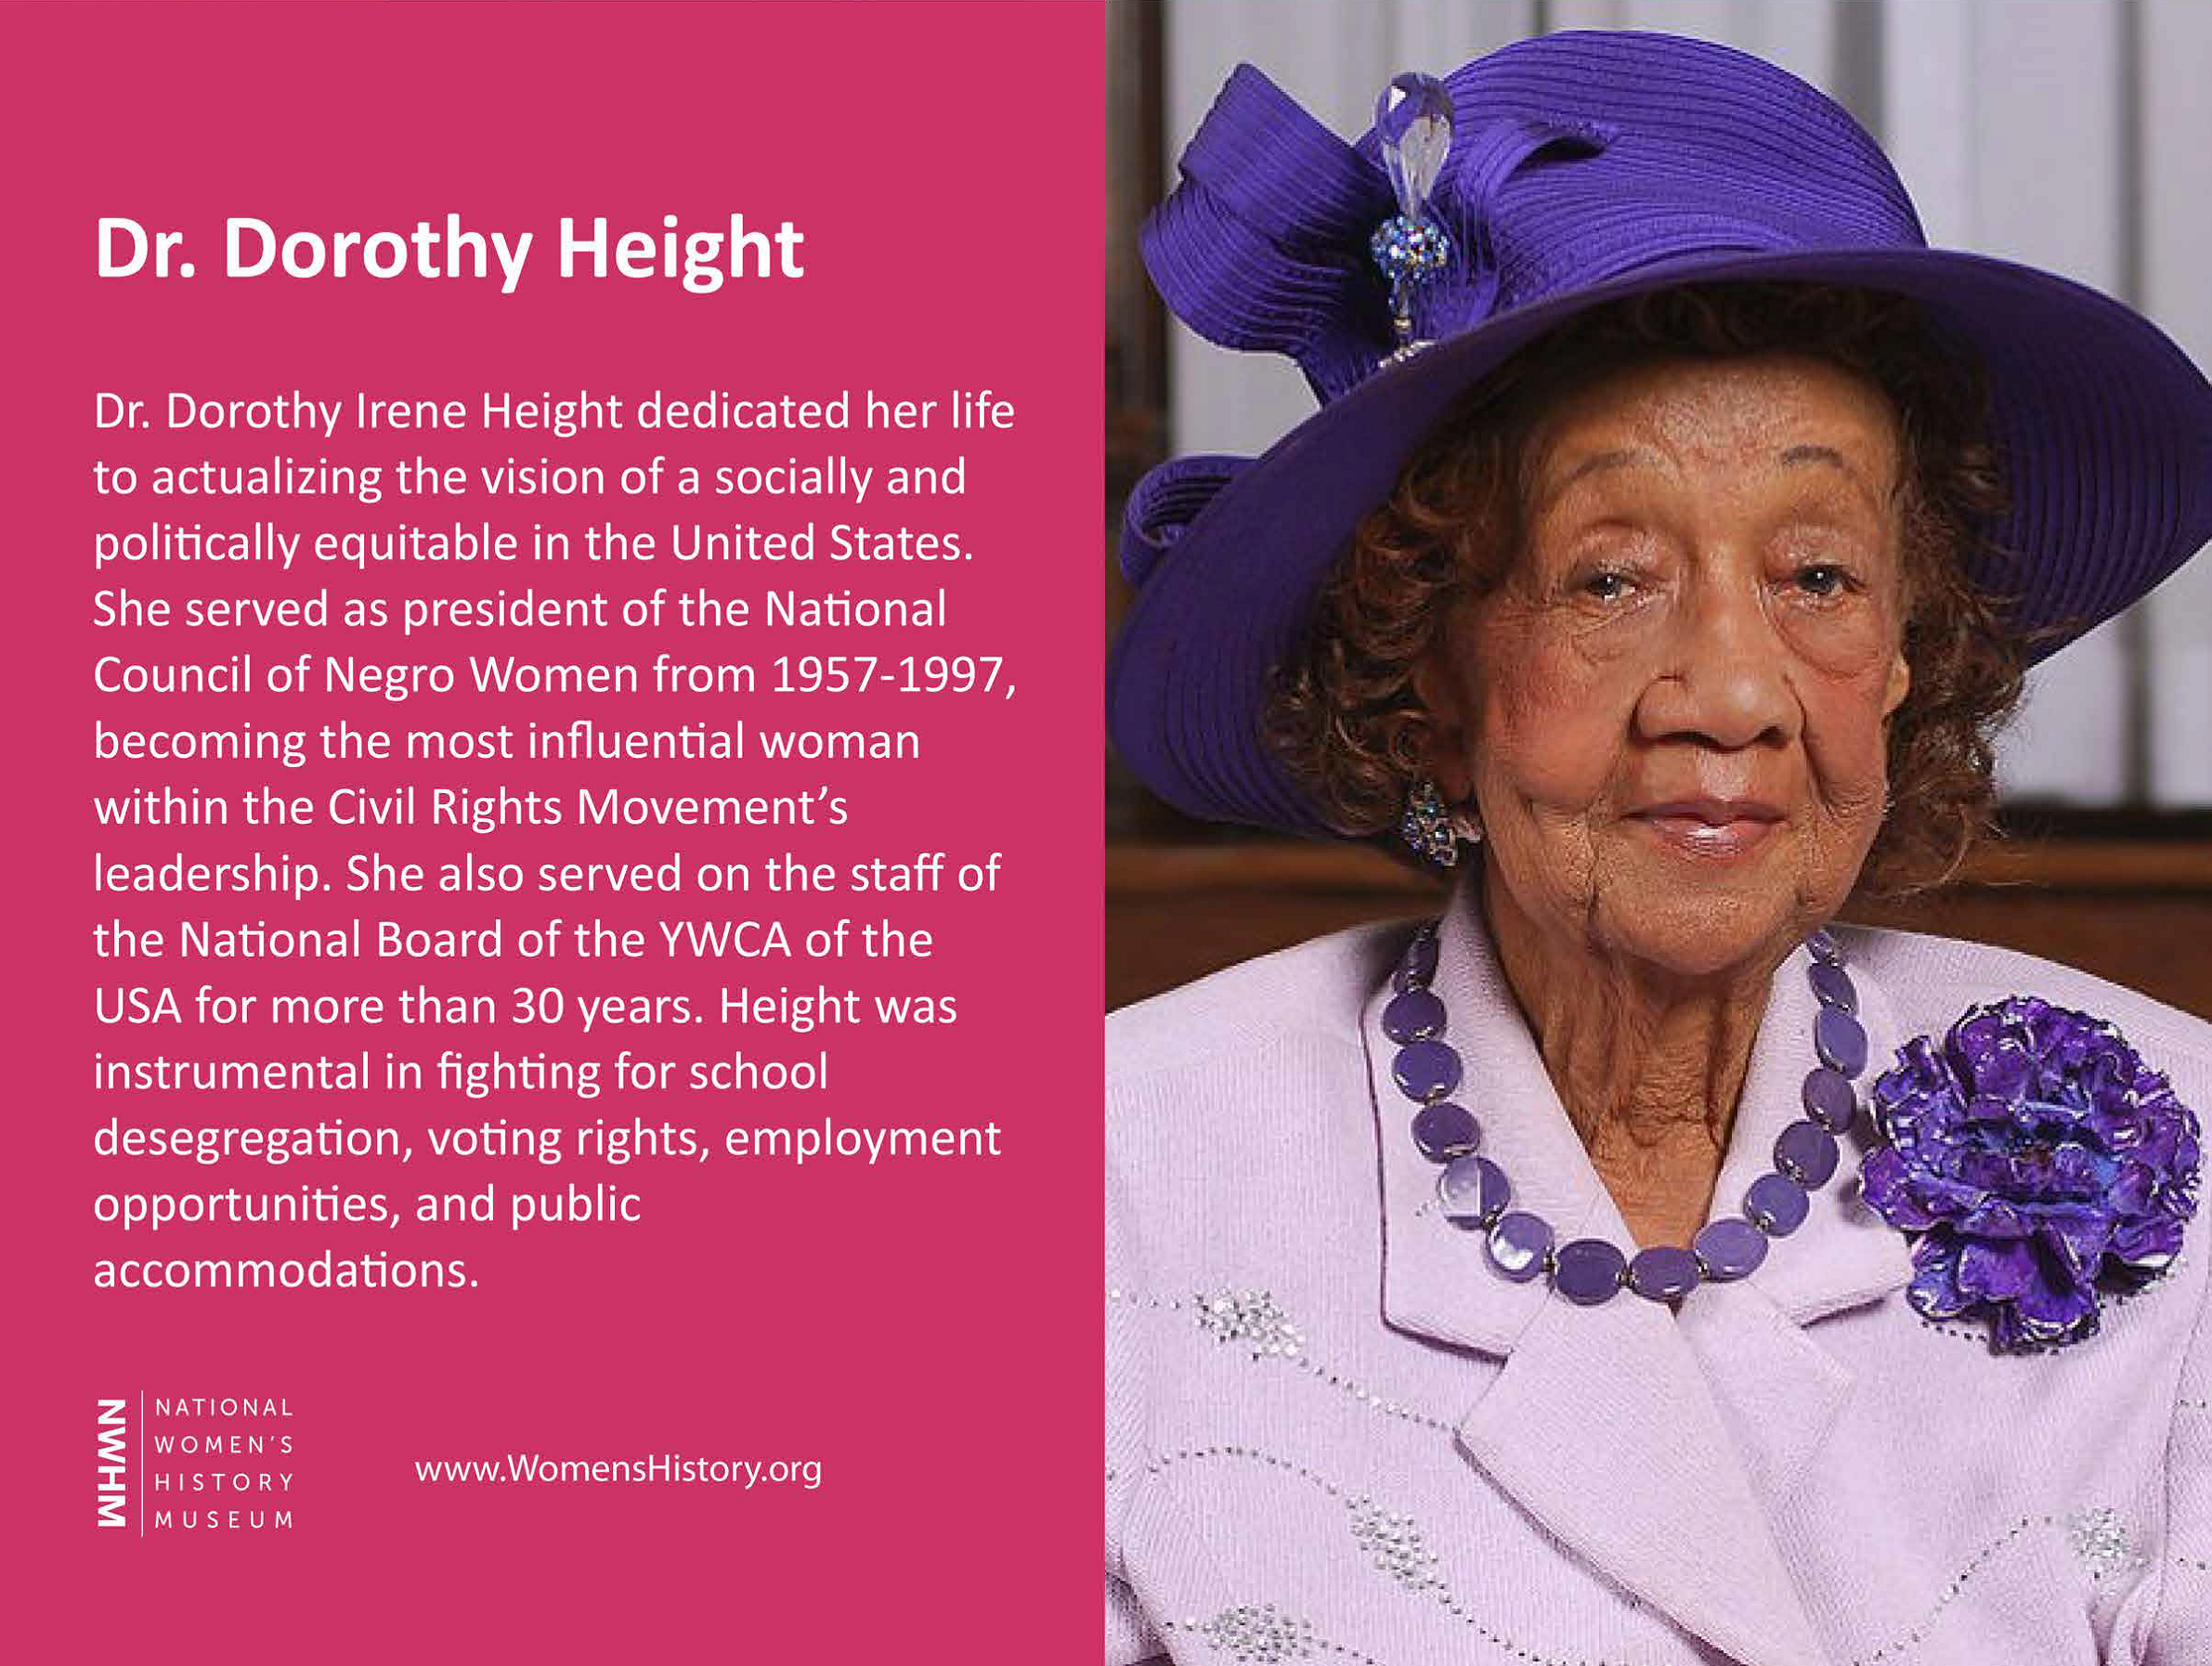 Dr. Dorothy Irene Height dedicated her life to actualizing the vision of a socially and politically equitable in the United States. She served as president of the National Council of Negro Women from 1957 - 1997, becoming the most influential woman within the Civil Rights Movement's leadership. She also served on the staff of the National Board of the YWCA of the USA for more than 30 years. Height was instrumental in fighting for school desegregation, voting rights, employment opportunities, and public accommodations.